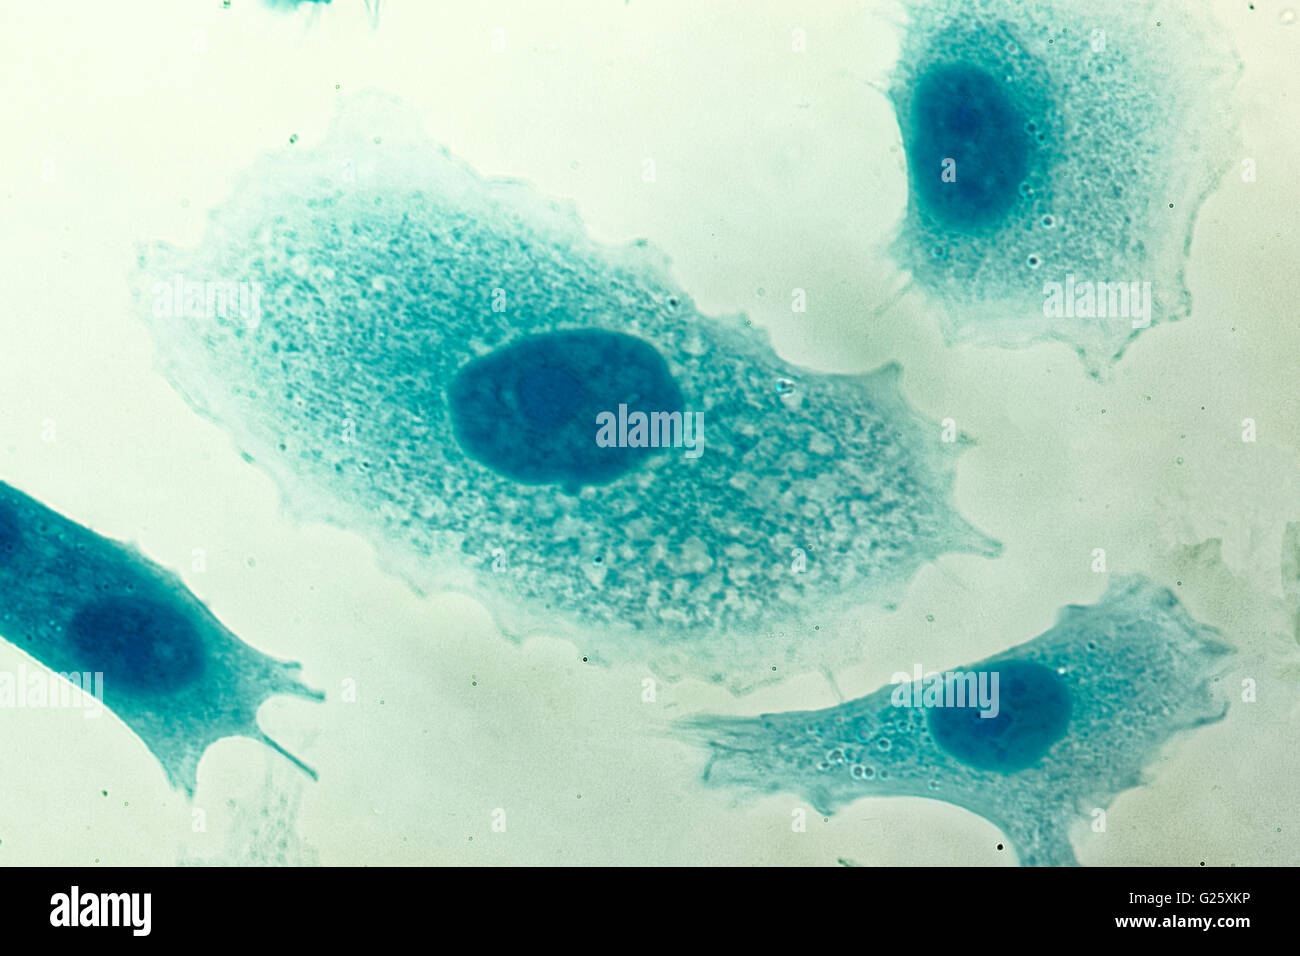 PC-3 human prostate cancer cells, stained with Coomassie blue, under differencial interference contrast microscope. - Stock Image